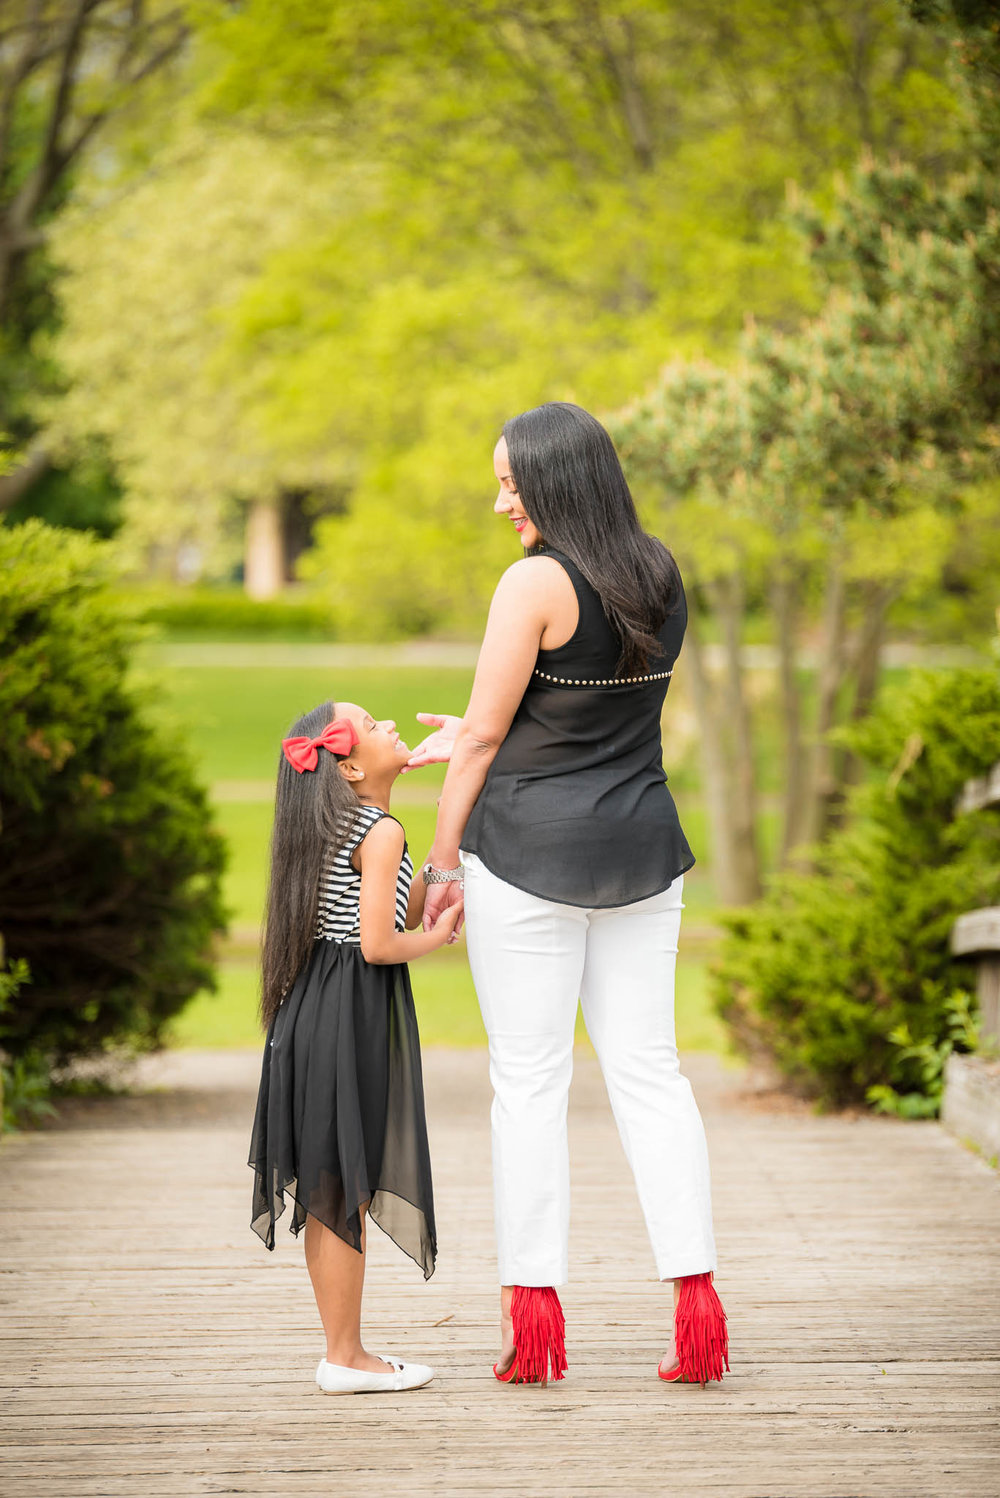 Grandma-Granddaughter Photos - Vision & Style Photography